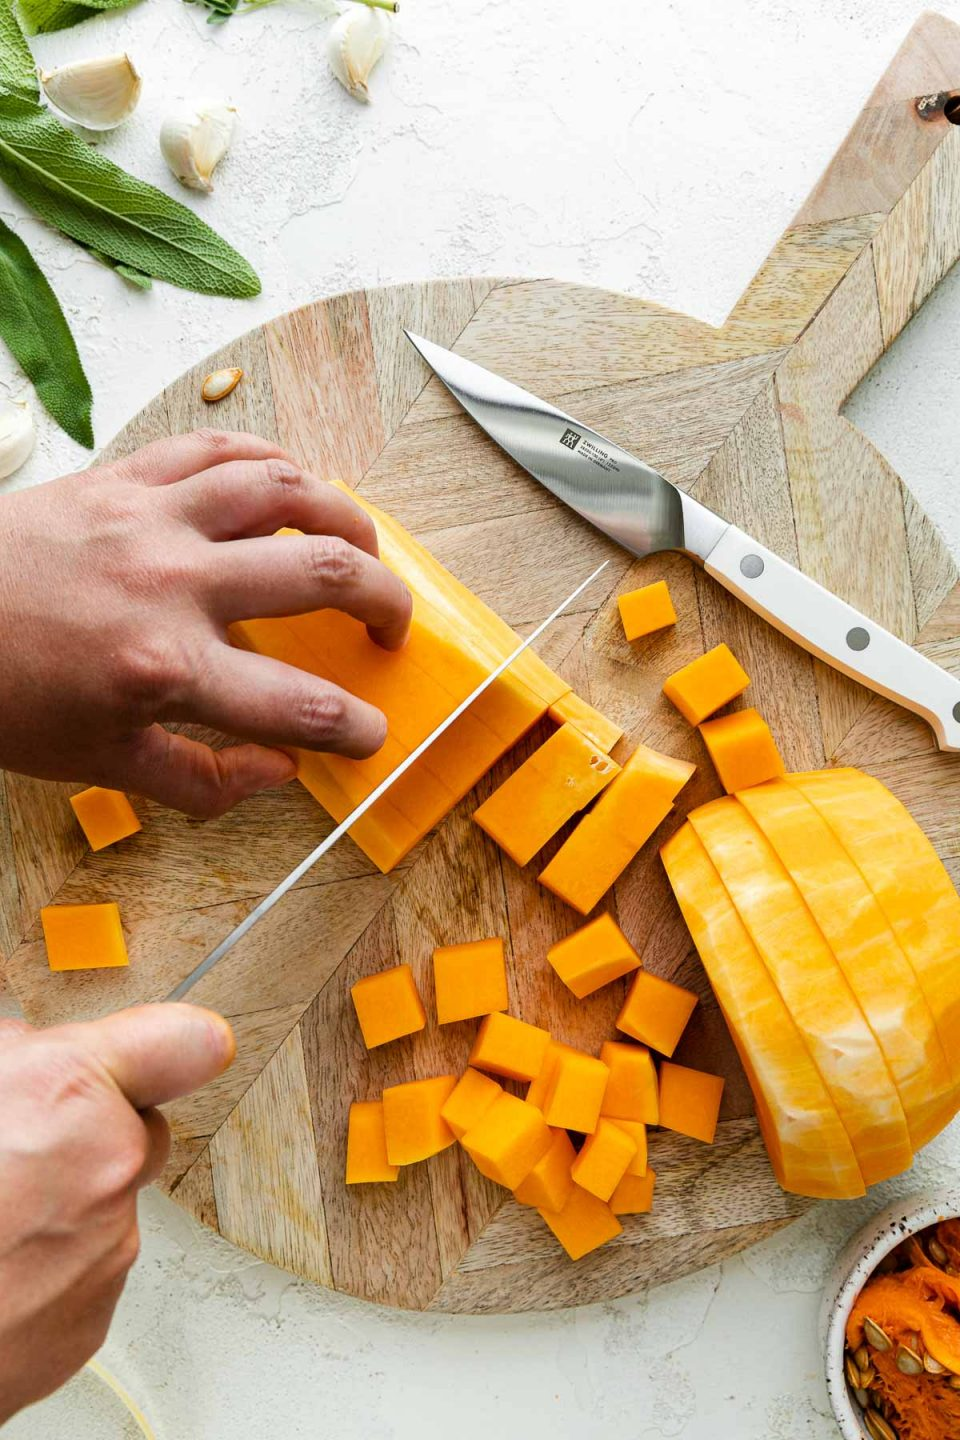 A peeled & cored butternut squash rests on top of a round wooden cutting board alongside a Zwilling Pro Le Blanc pairing knife. A woman's hands hold the top portion of a group of cut butternut squash, while using a knife to cut the squash into cubes with her other hand. Cubes of butternut squash rest on the cutting board & the cutting board sits atop a white textured surface while butternut squash peelings, fresh herbs, & cloves of garlic surround the cutting board.